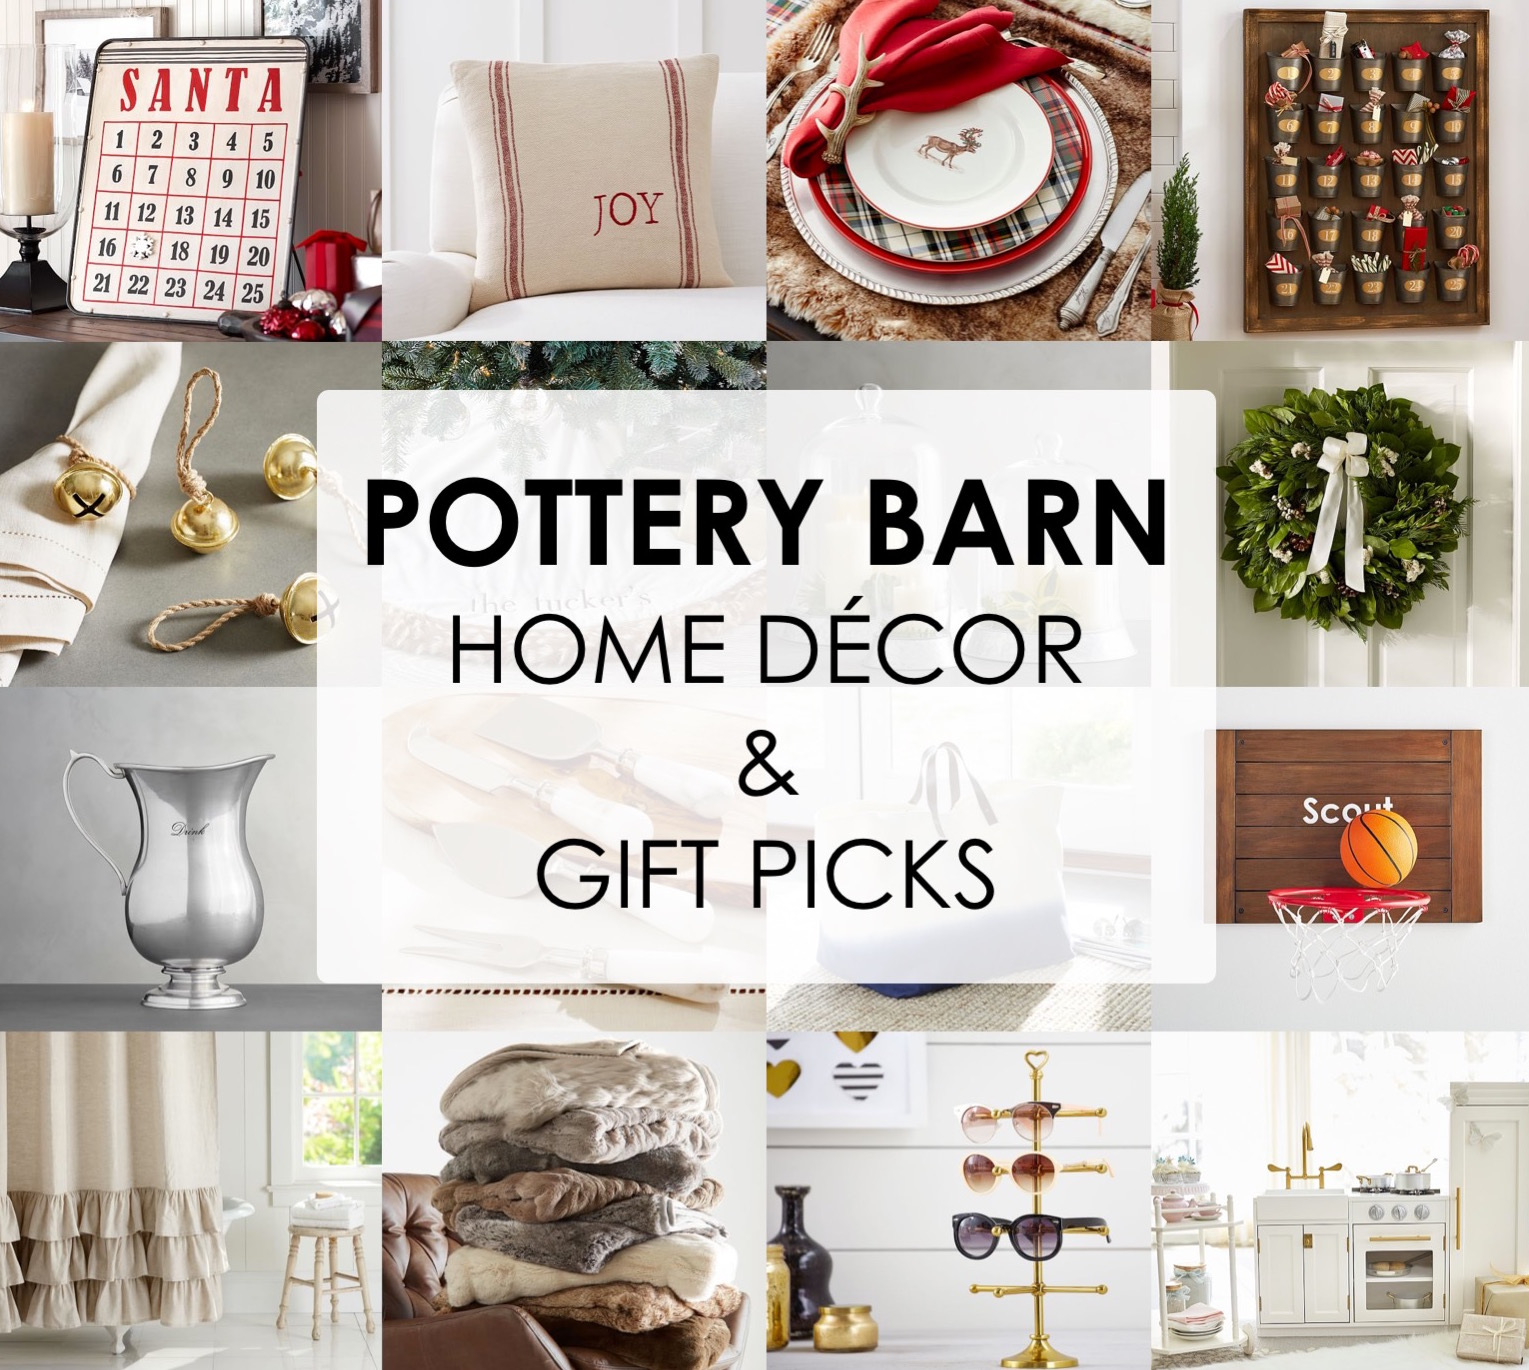 holiday decor gift ideas pottery barn edition